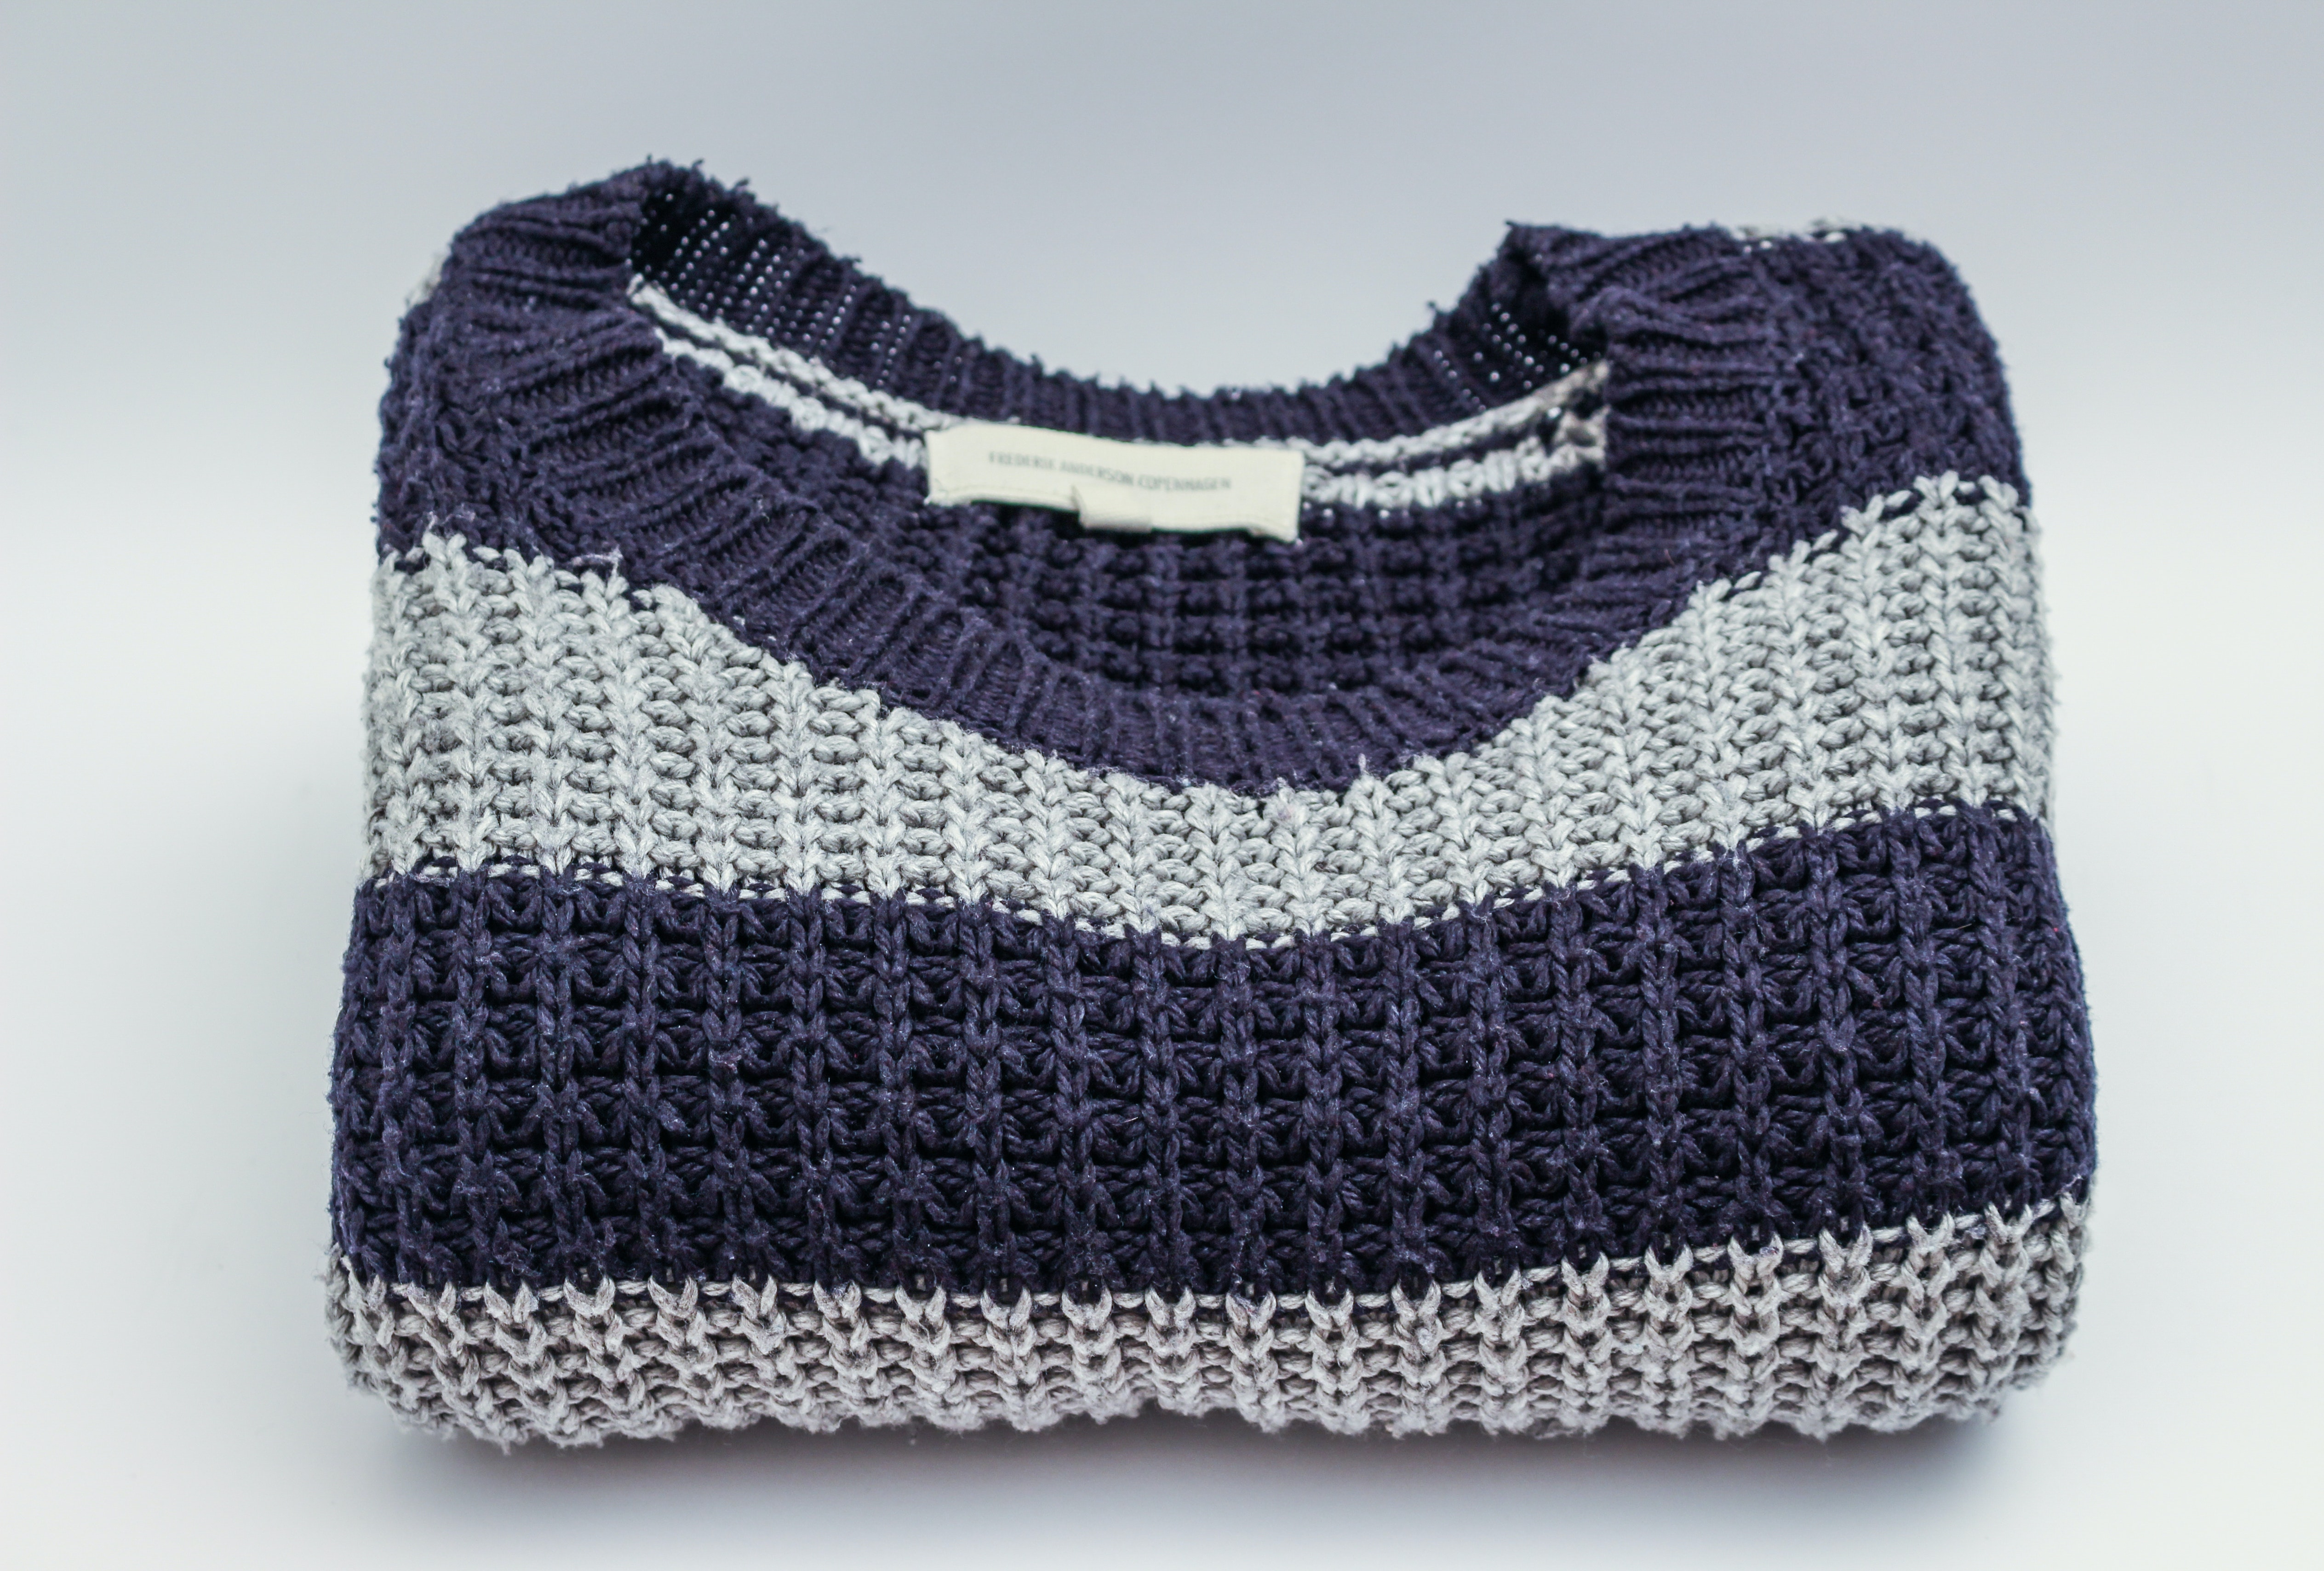 Sweaters, Souvenirs to bring back from Iceland